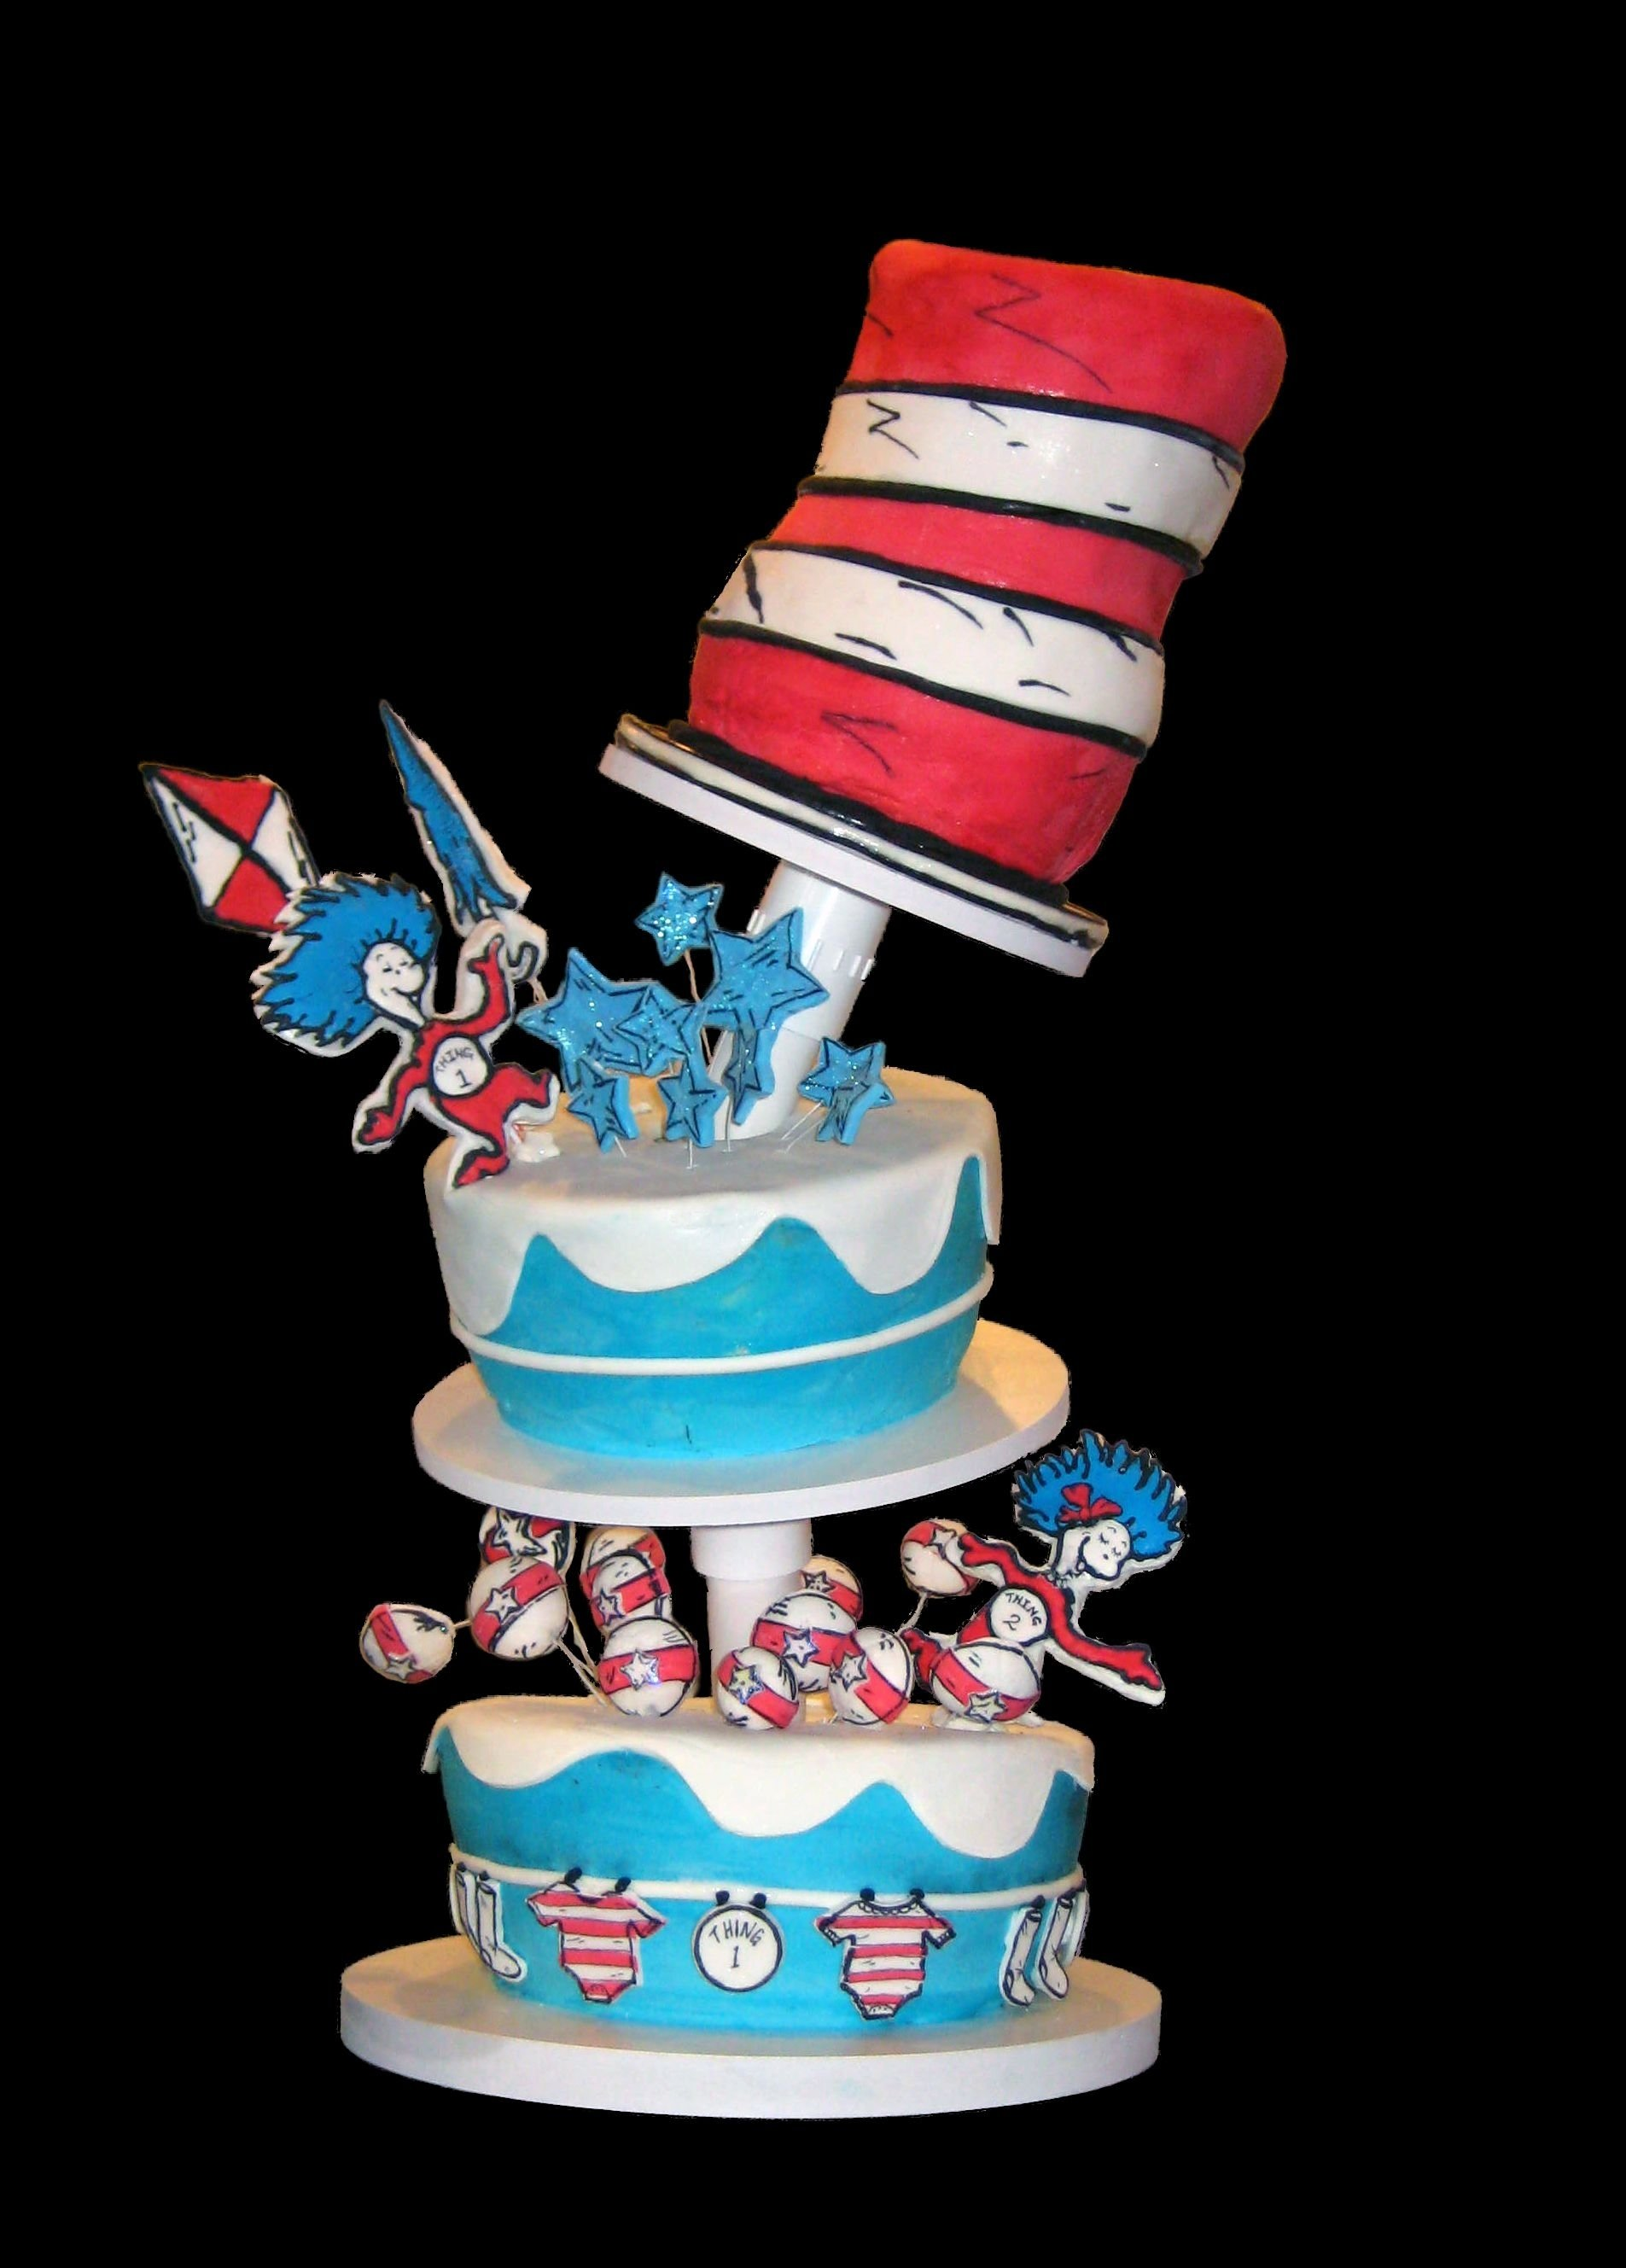 10 Awesome Thing 1 And Thing 2 Cake Ideas pinkatie bugg on twin baby shower pinterest hat cake cake